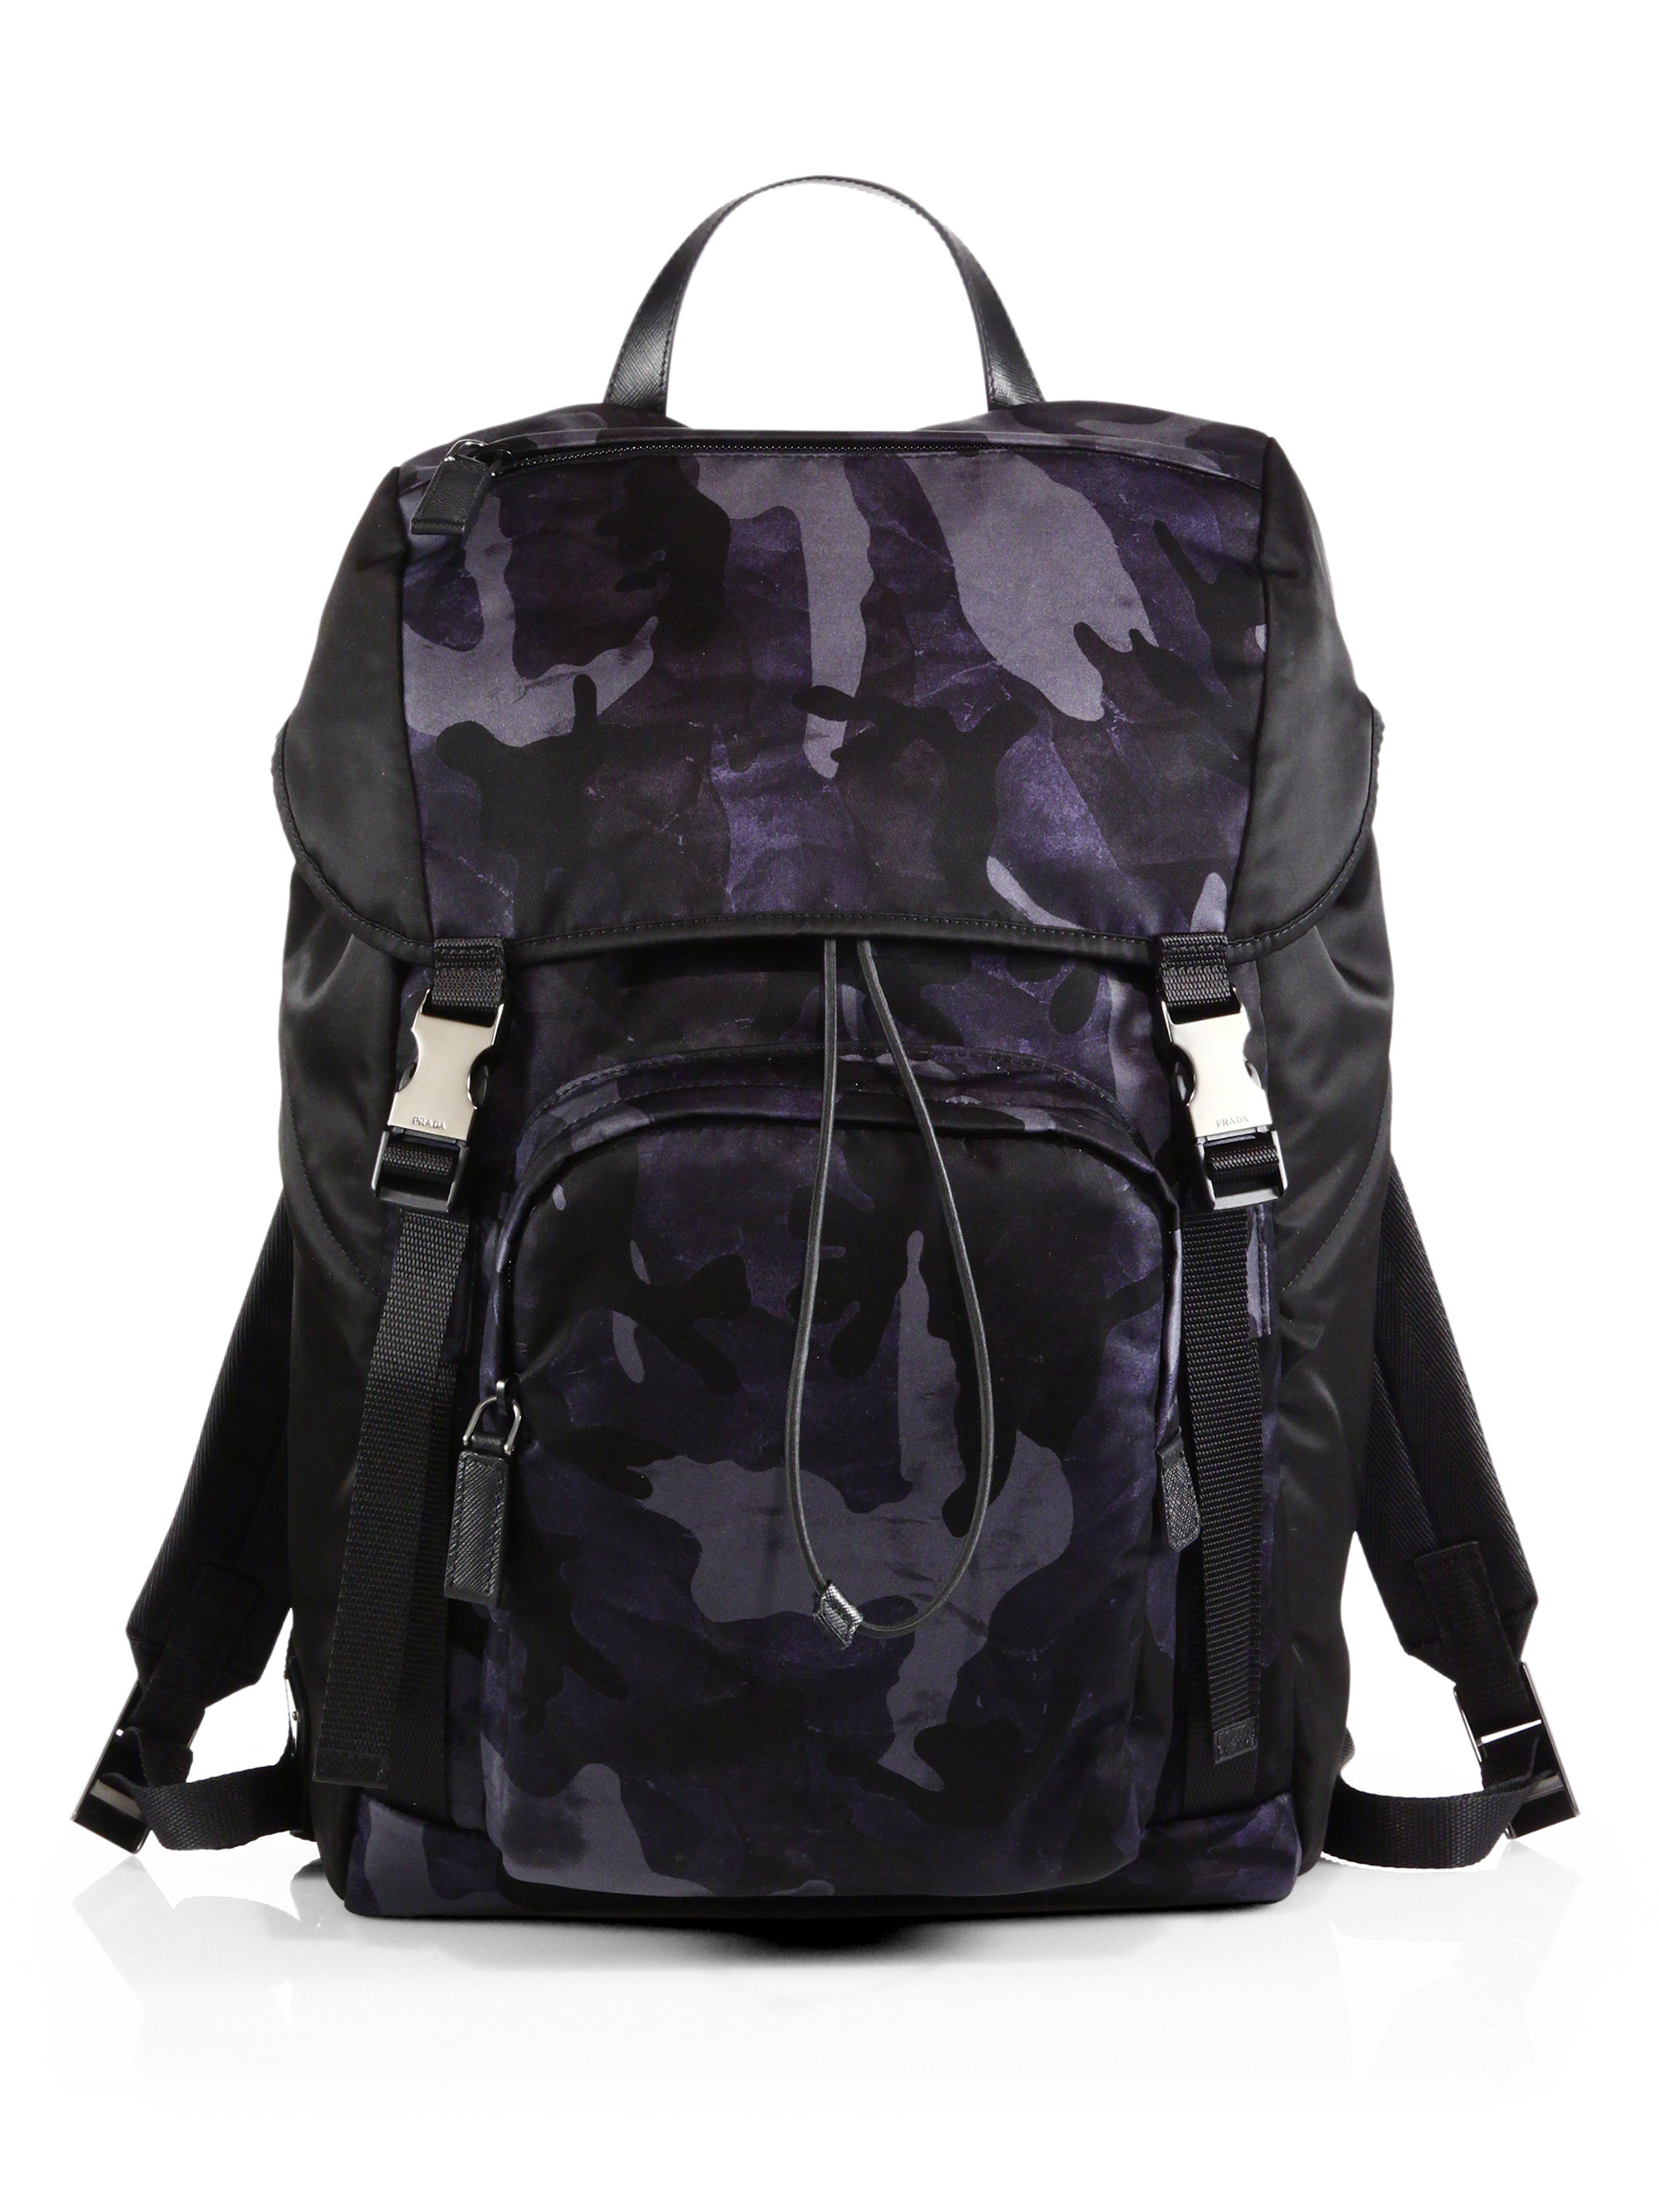 e5fba5a1bb8b ... get where to buy lyst prada nylon camouflage backpack in blue for men  eb879 b1e30 715a8